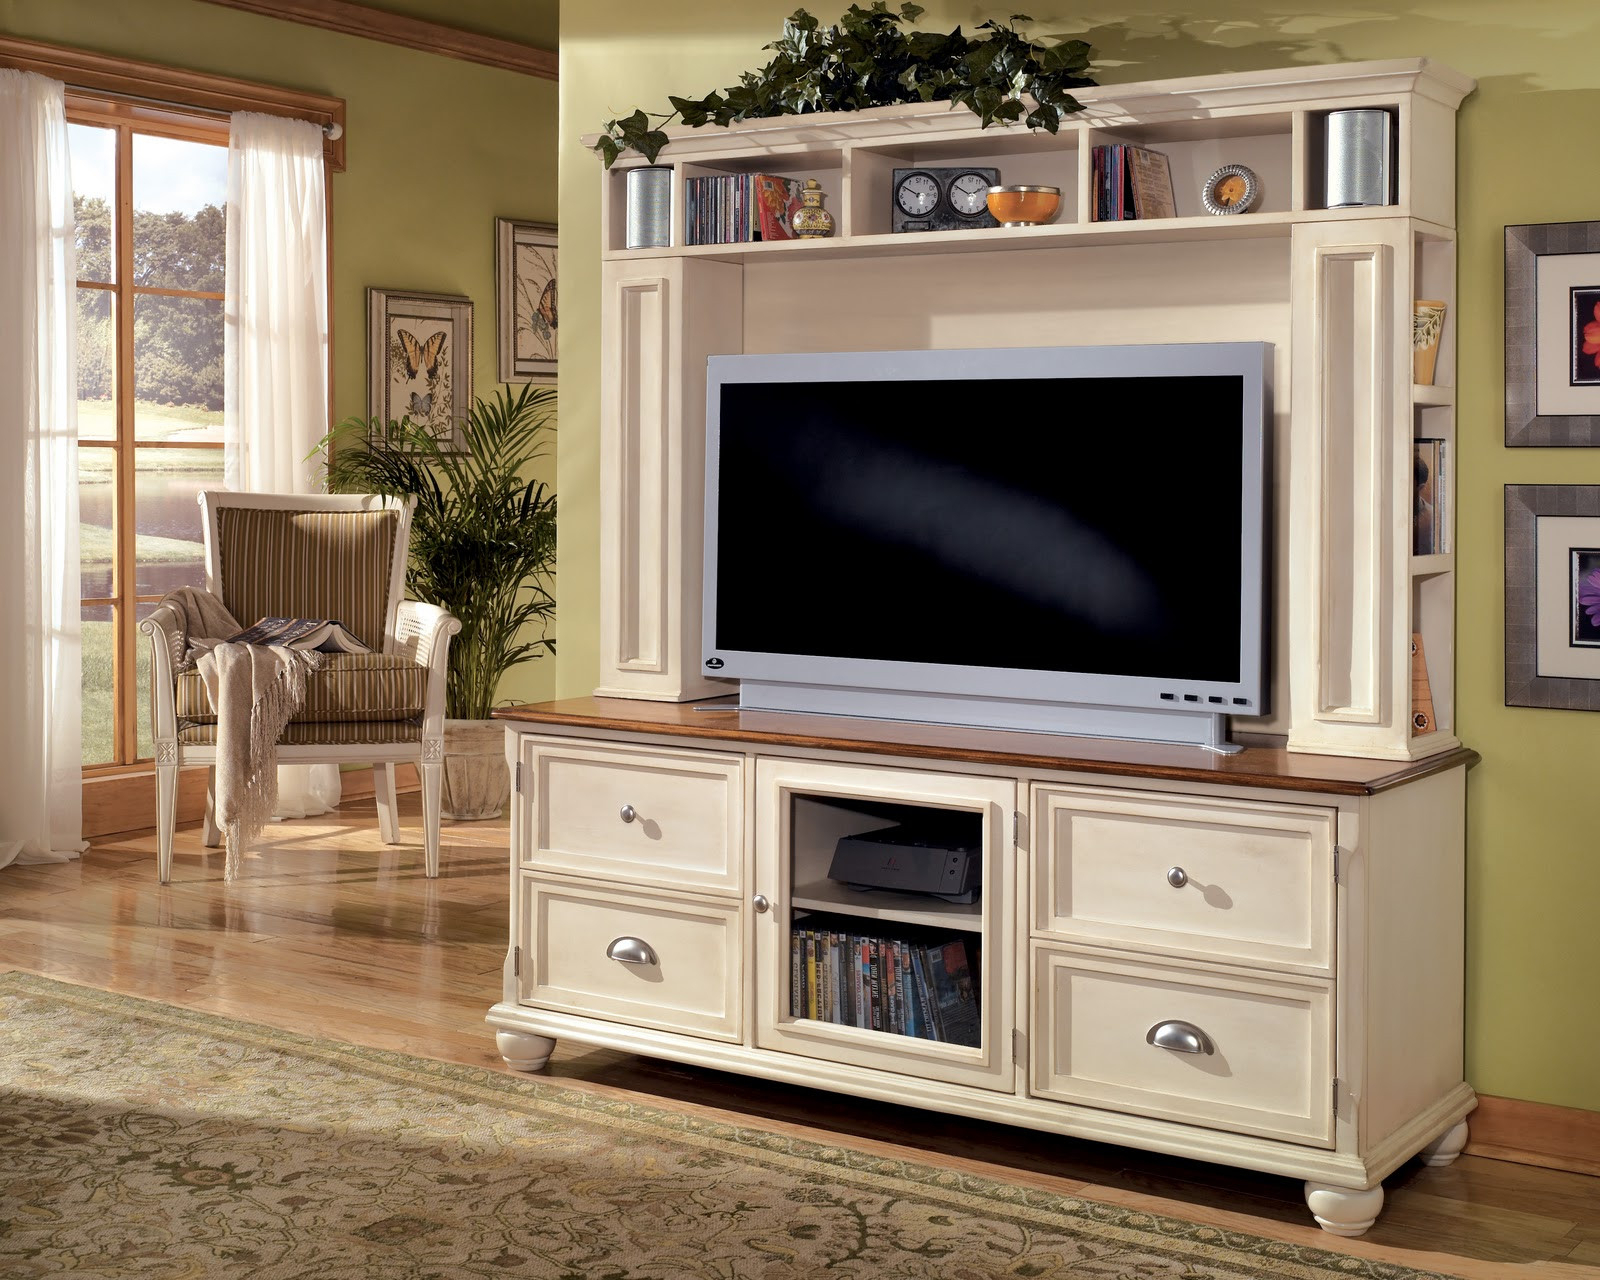 Fashionable Bedroom Tv Stands Stand Dresser Ikea Playroom Kallax White Rack Box Throughout Playroom Tv Stands (View 5 of 20)